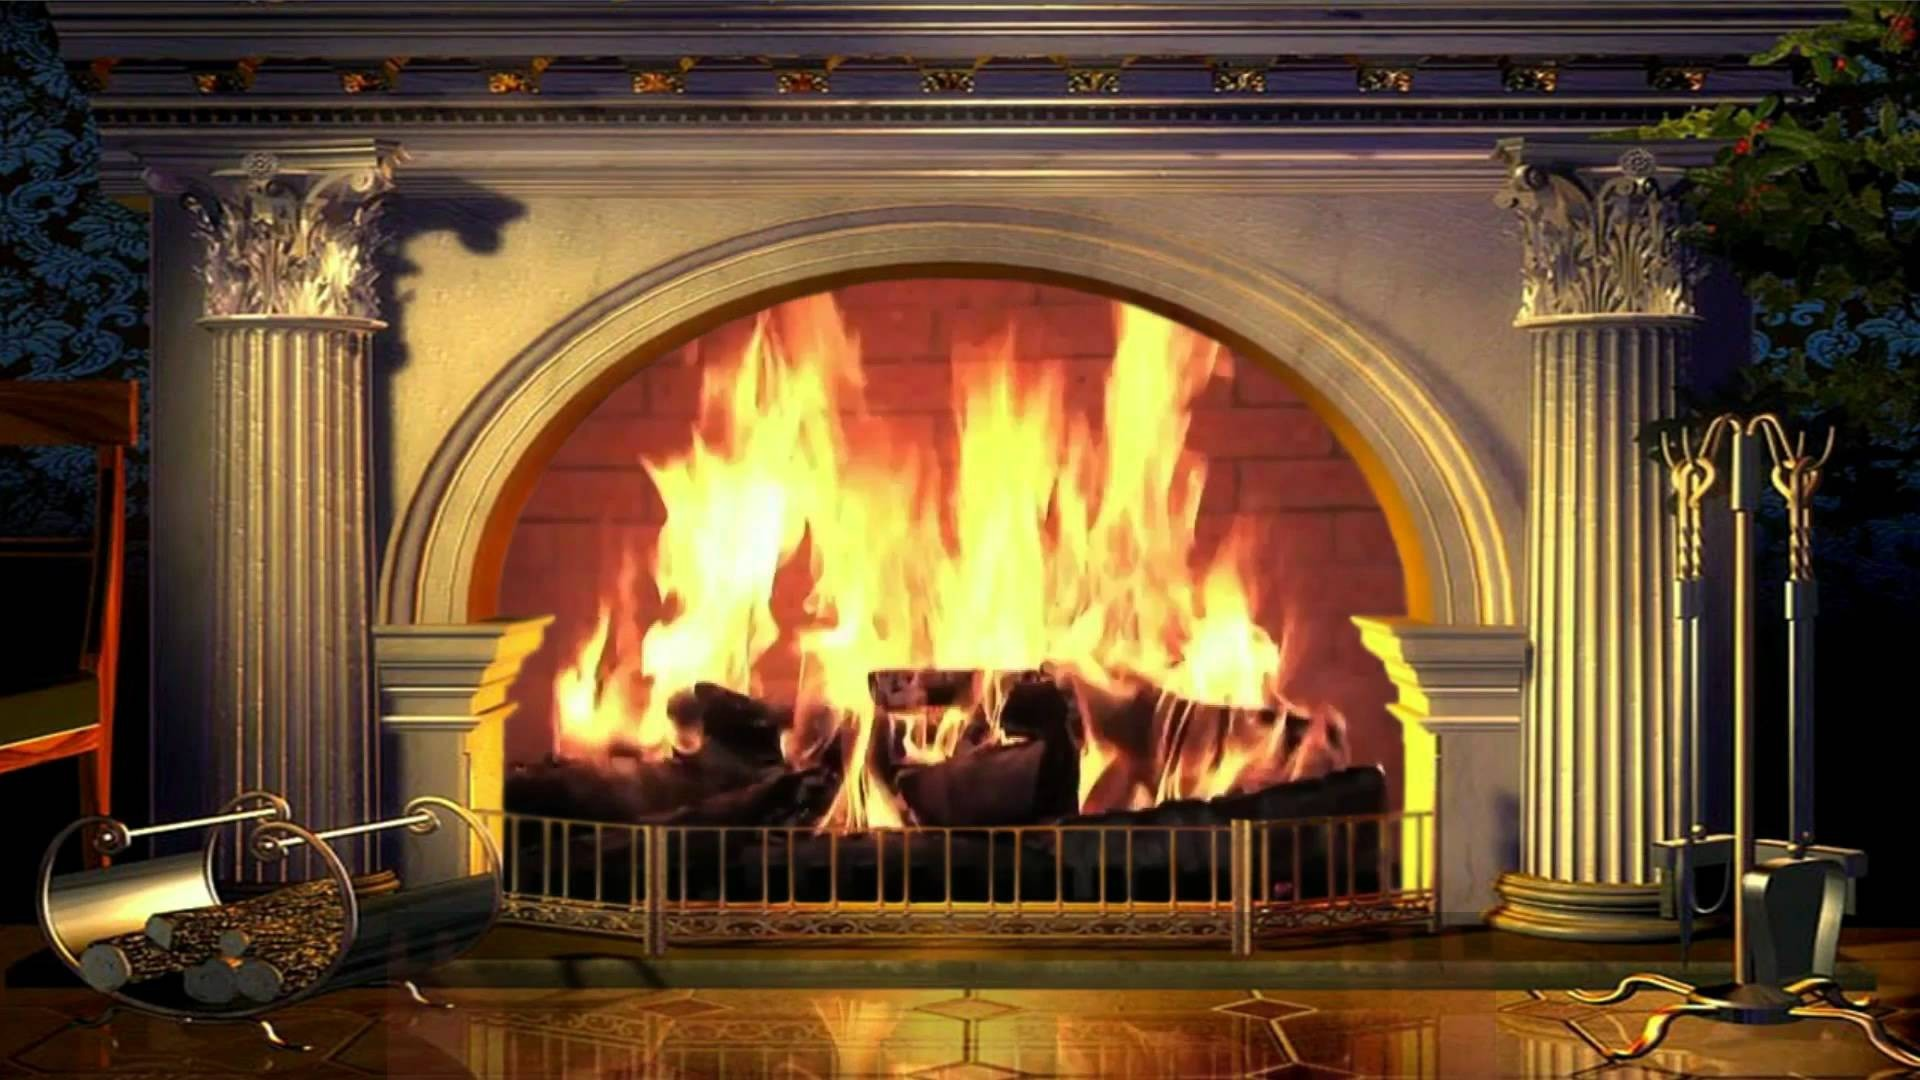 1920x1080 Fireplace Wallpaper